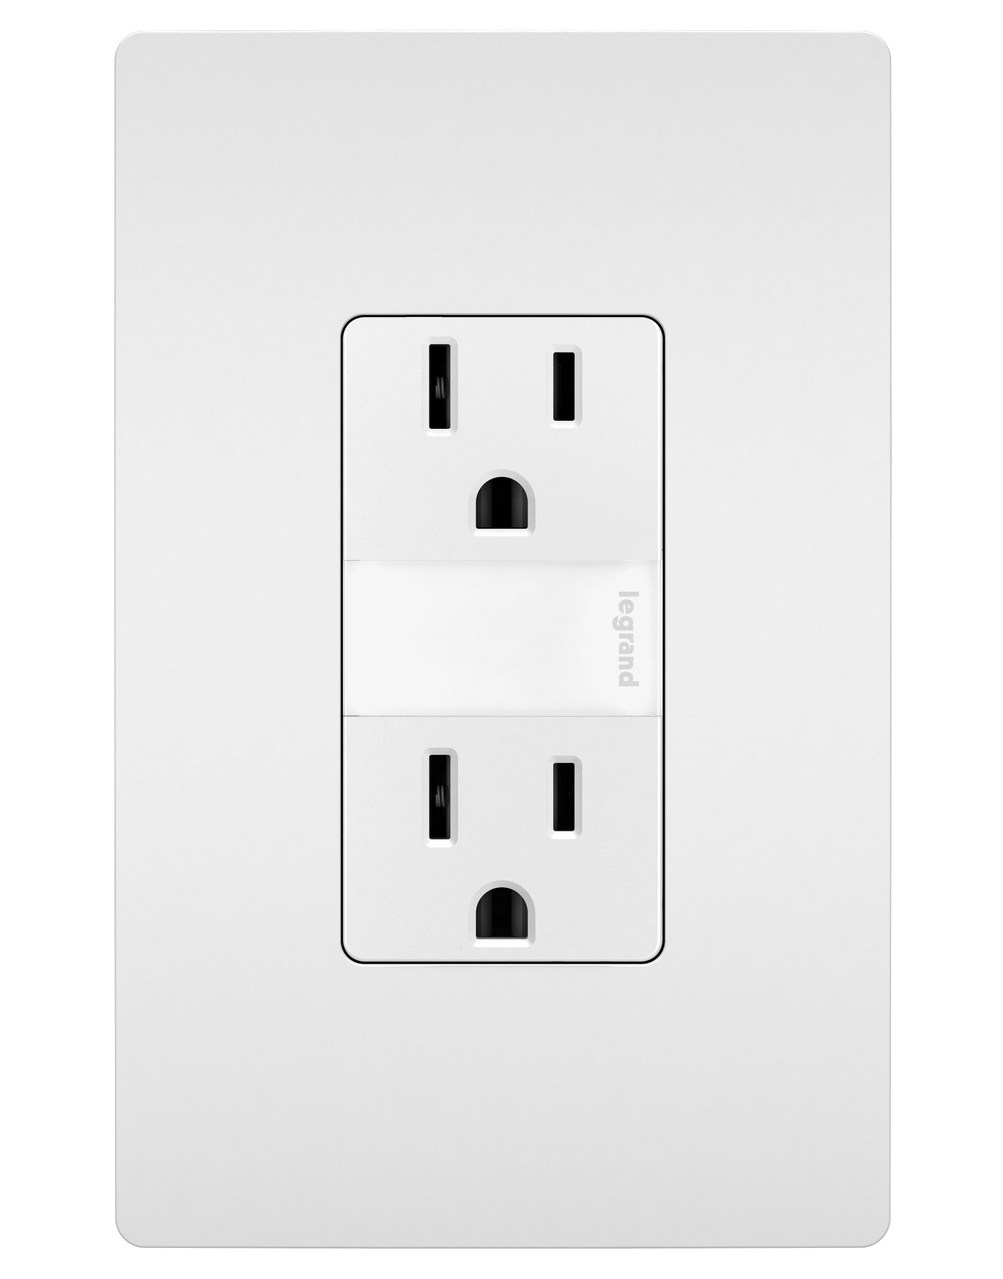 3 way outlet motor diagram wiring radiant night light w single pole switch white